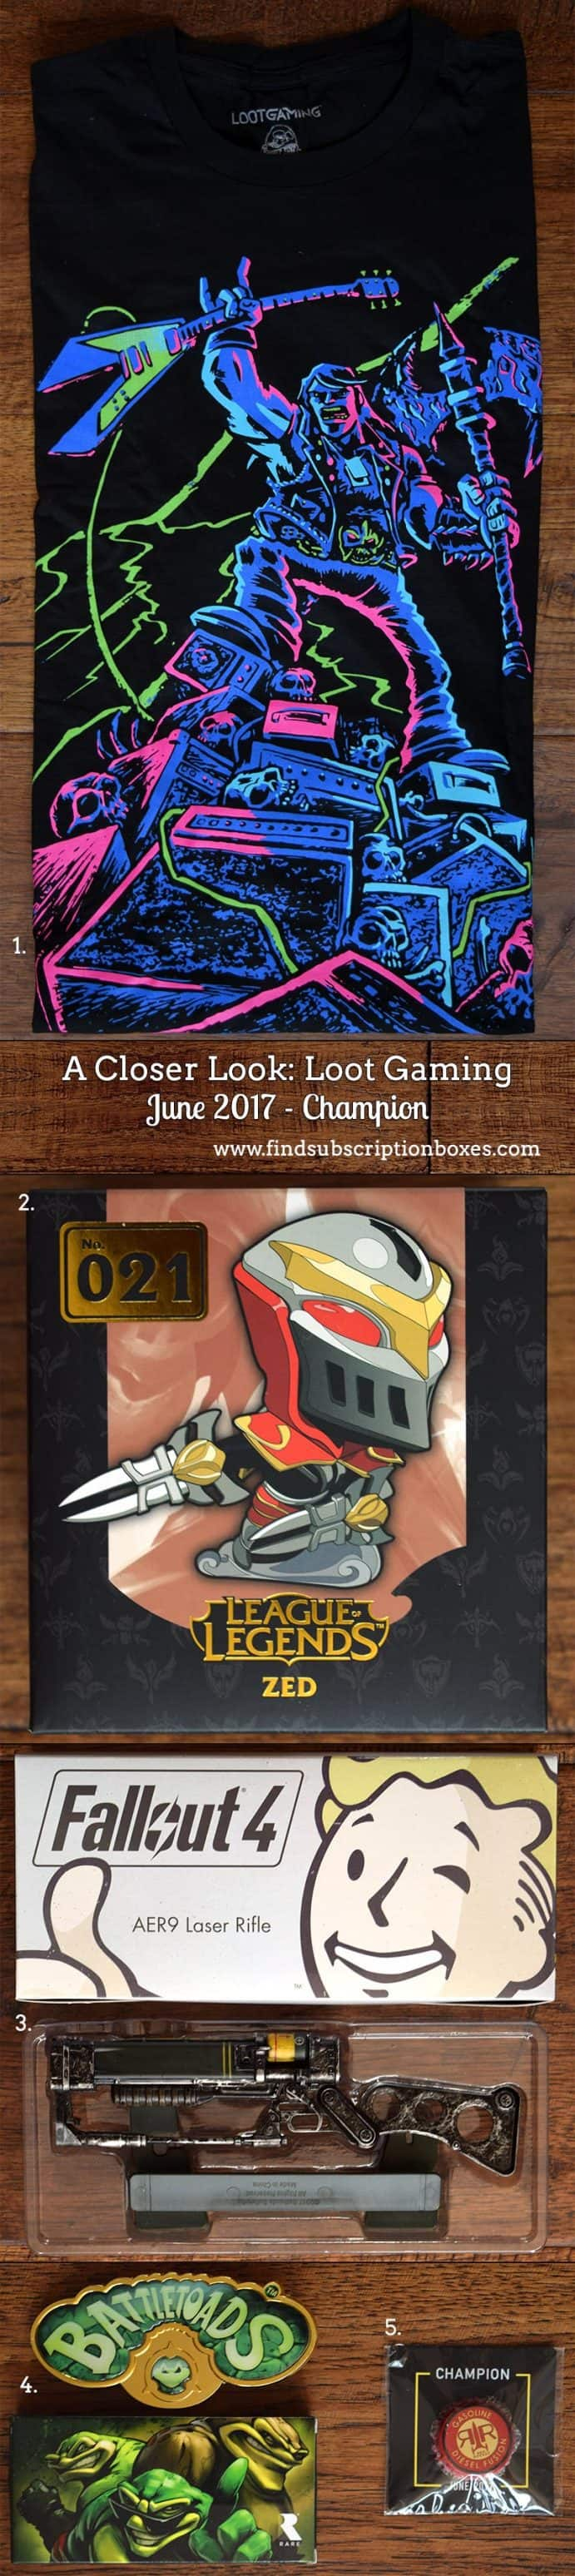 June 2017 Loot Gaming Review - Champion - Inside the Box